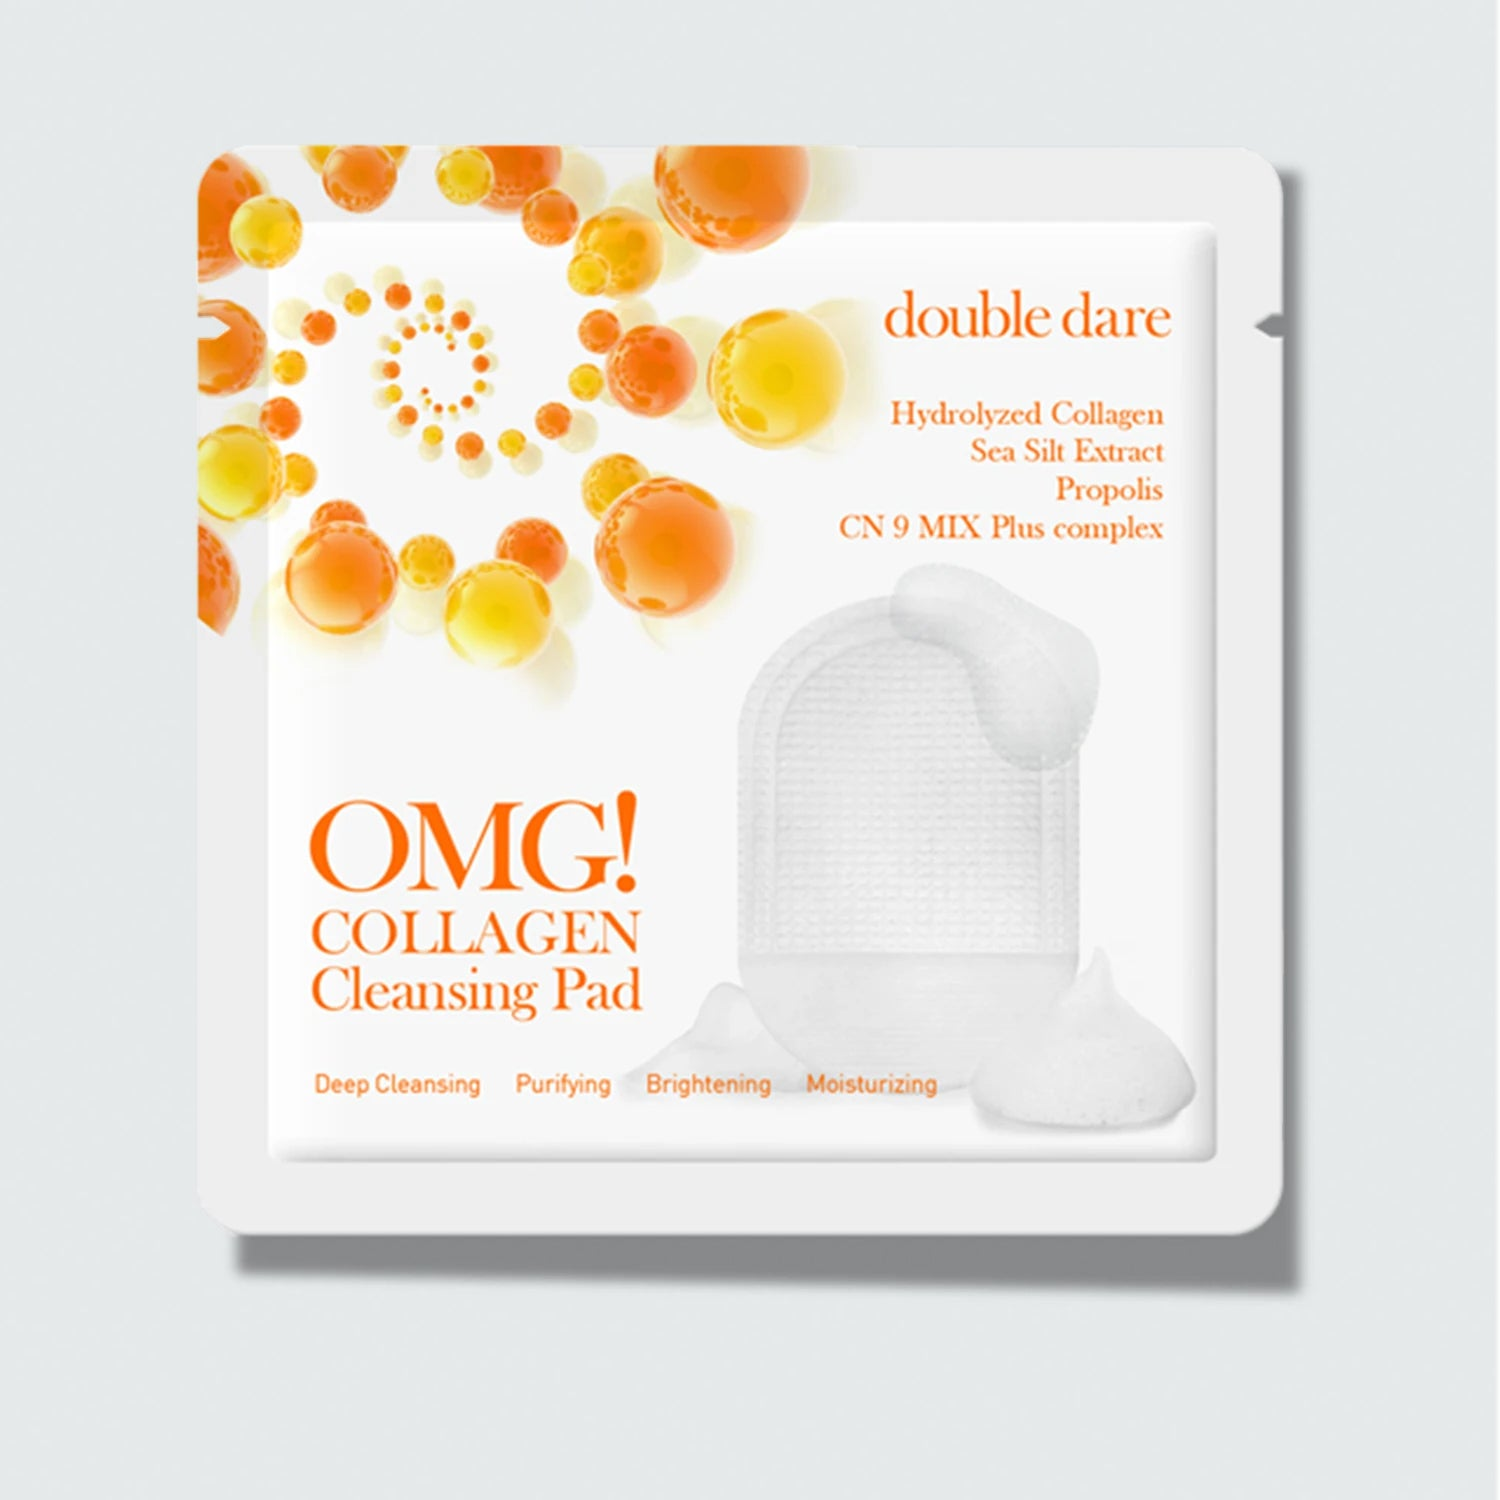 OMG! COLLAGEN <br>CLEANSING PAD - DOUBLE DARE